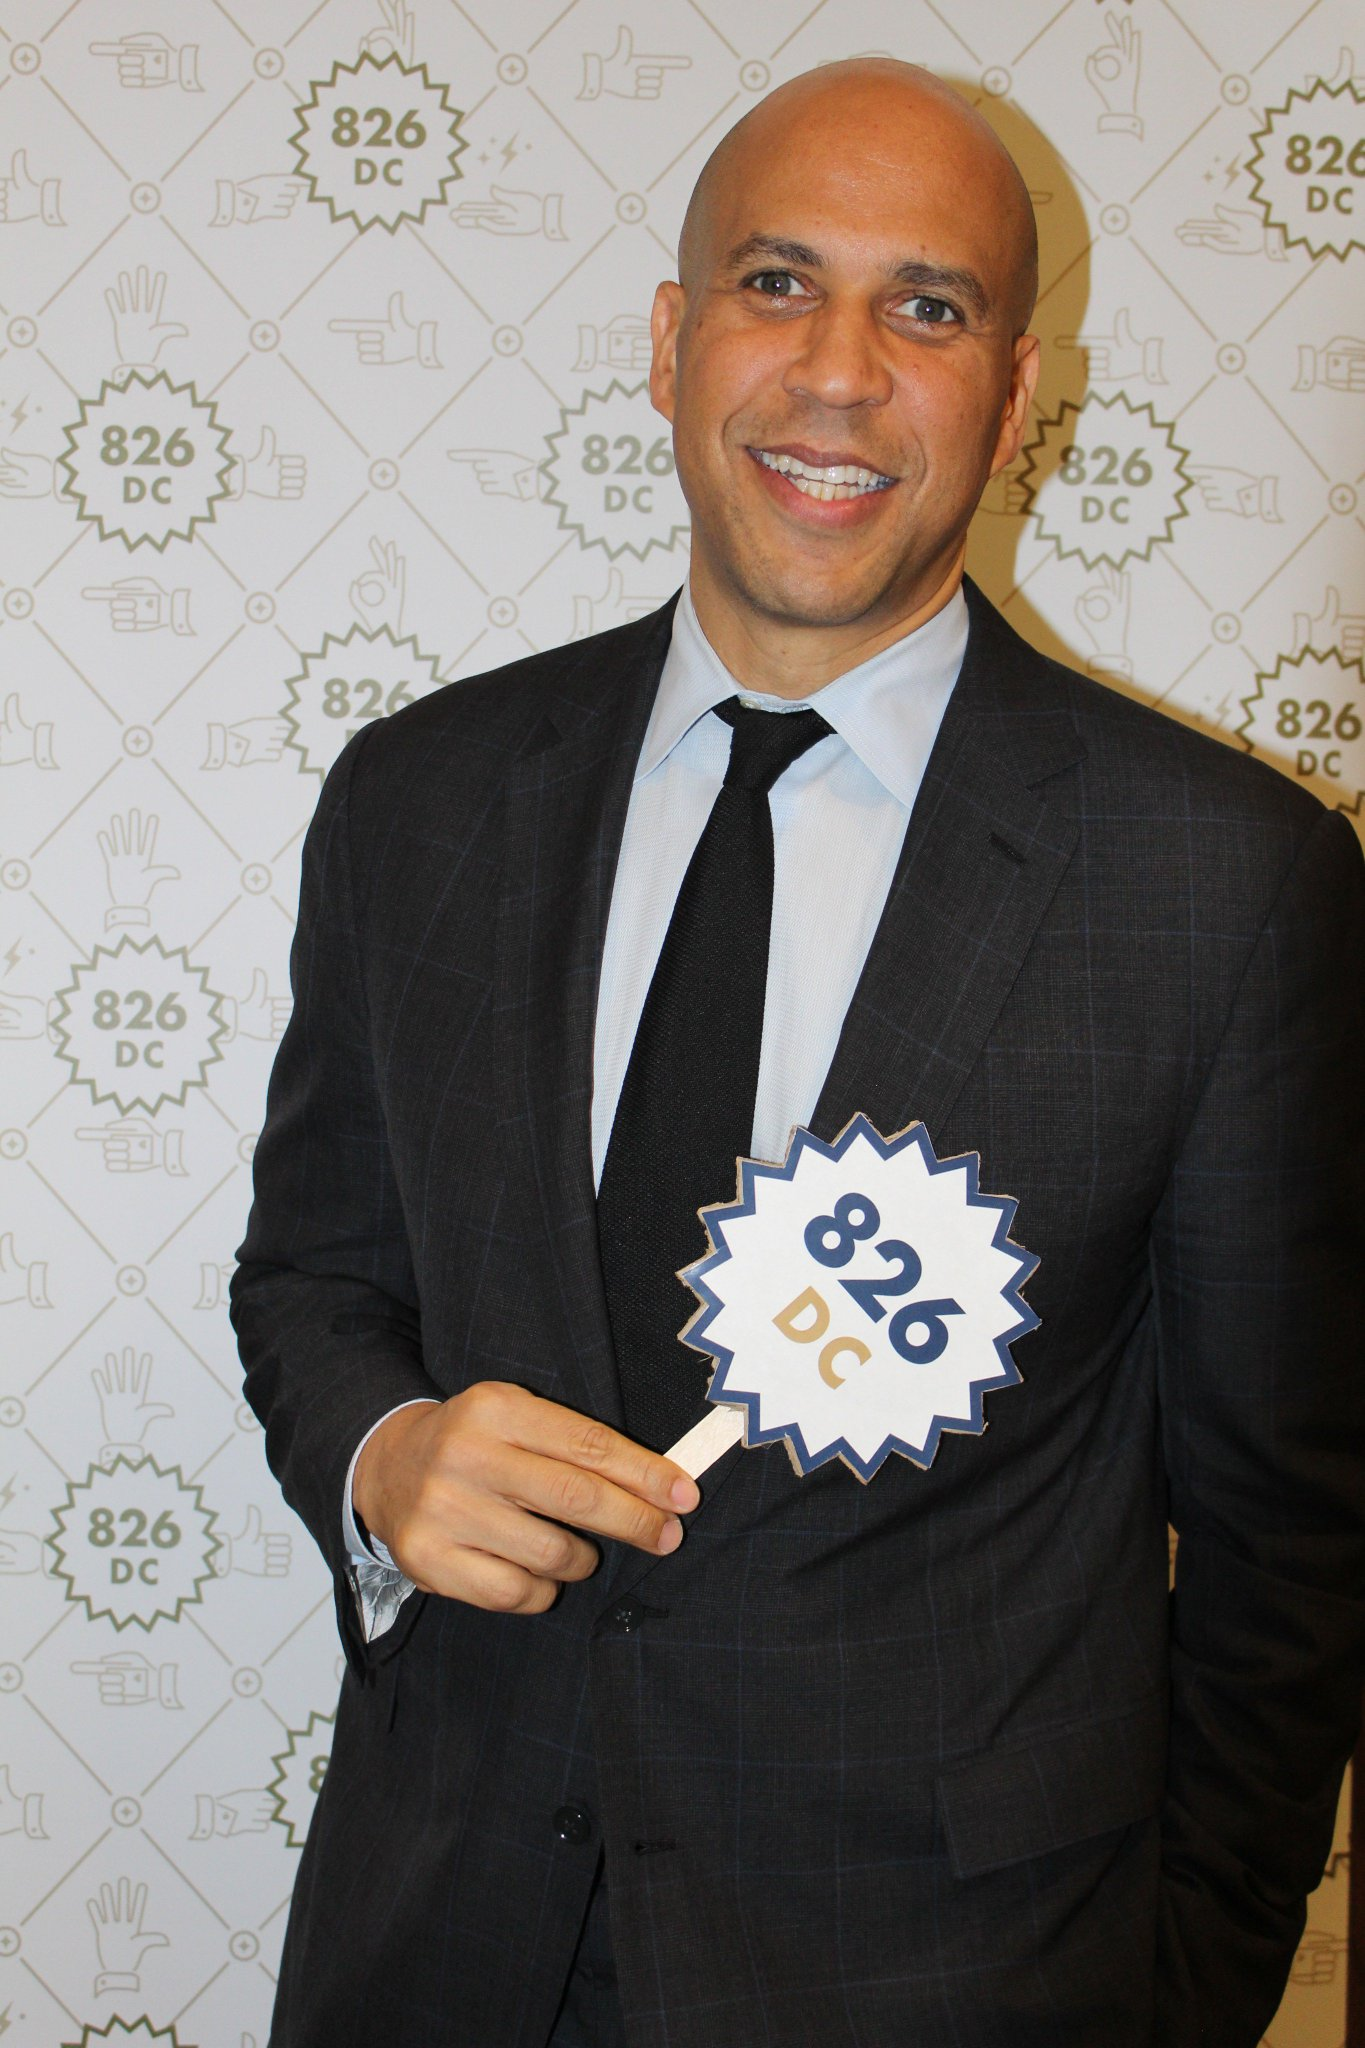 Senator @CoryBooker repping 826DC last night at #TriviaforCheaters. Thank you for joining us, Senator. https://t.co/pX9IYJA2CE